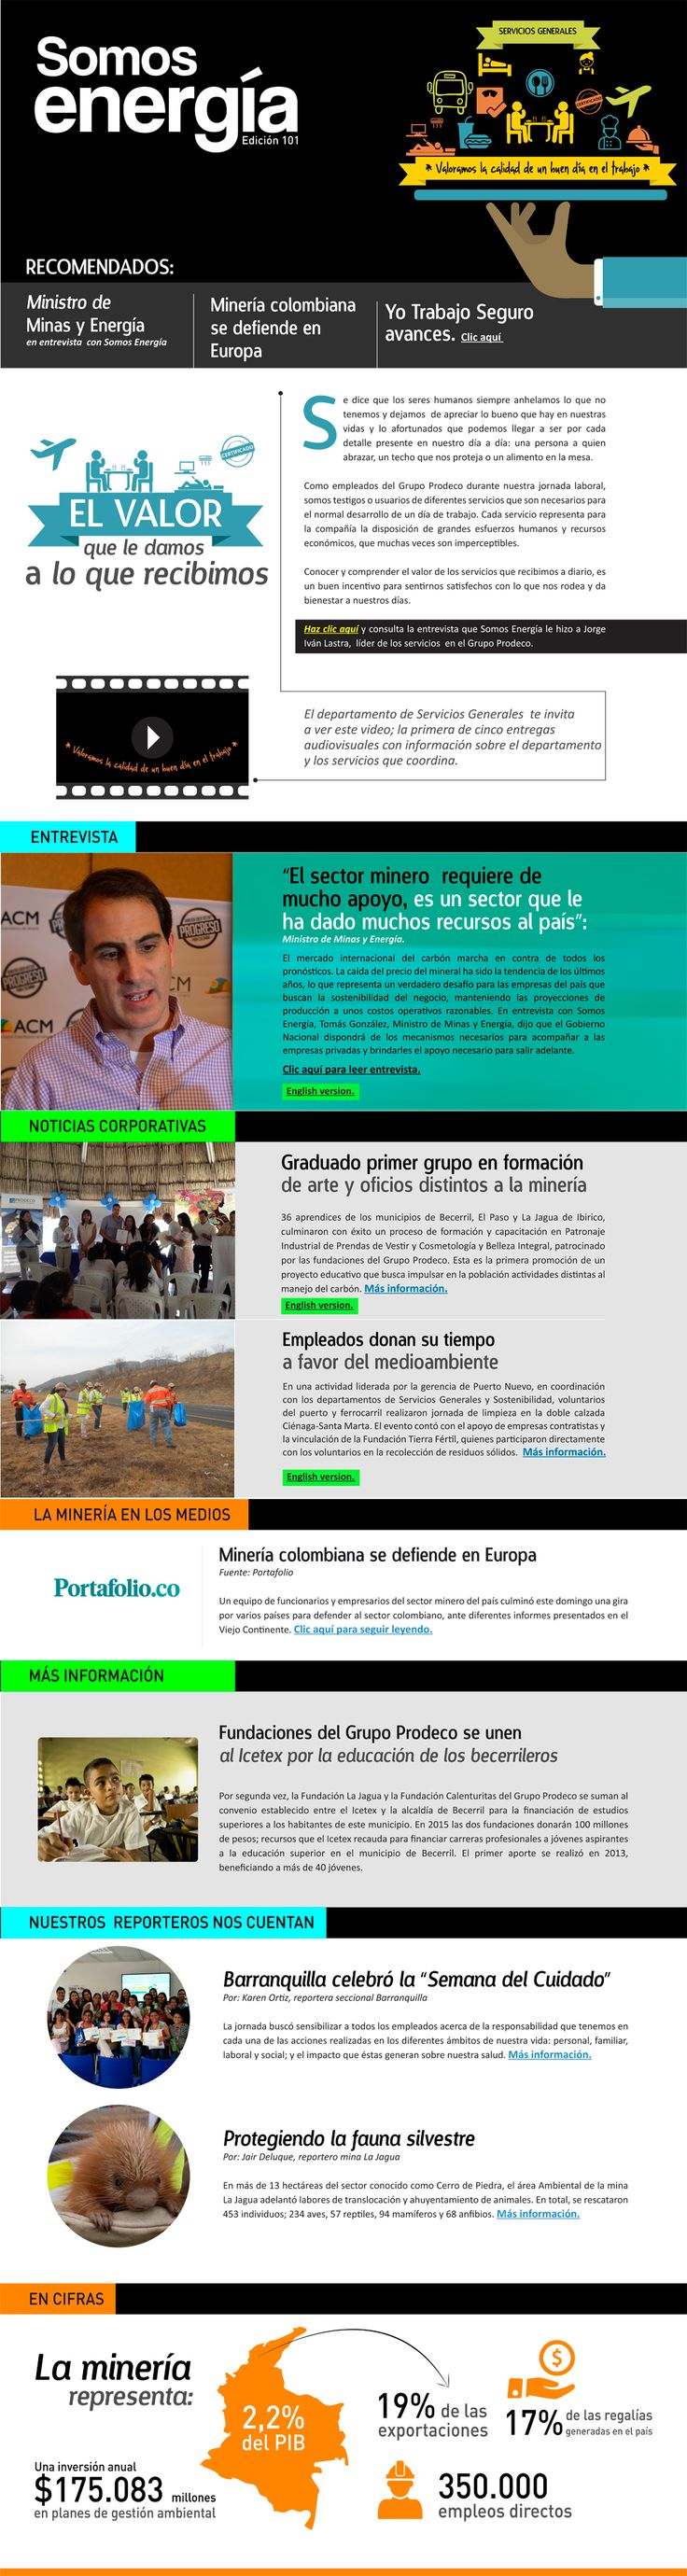 Edición No. 101 #boletin #news #enews #diagramacion #diseño